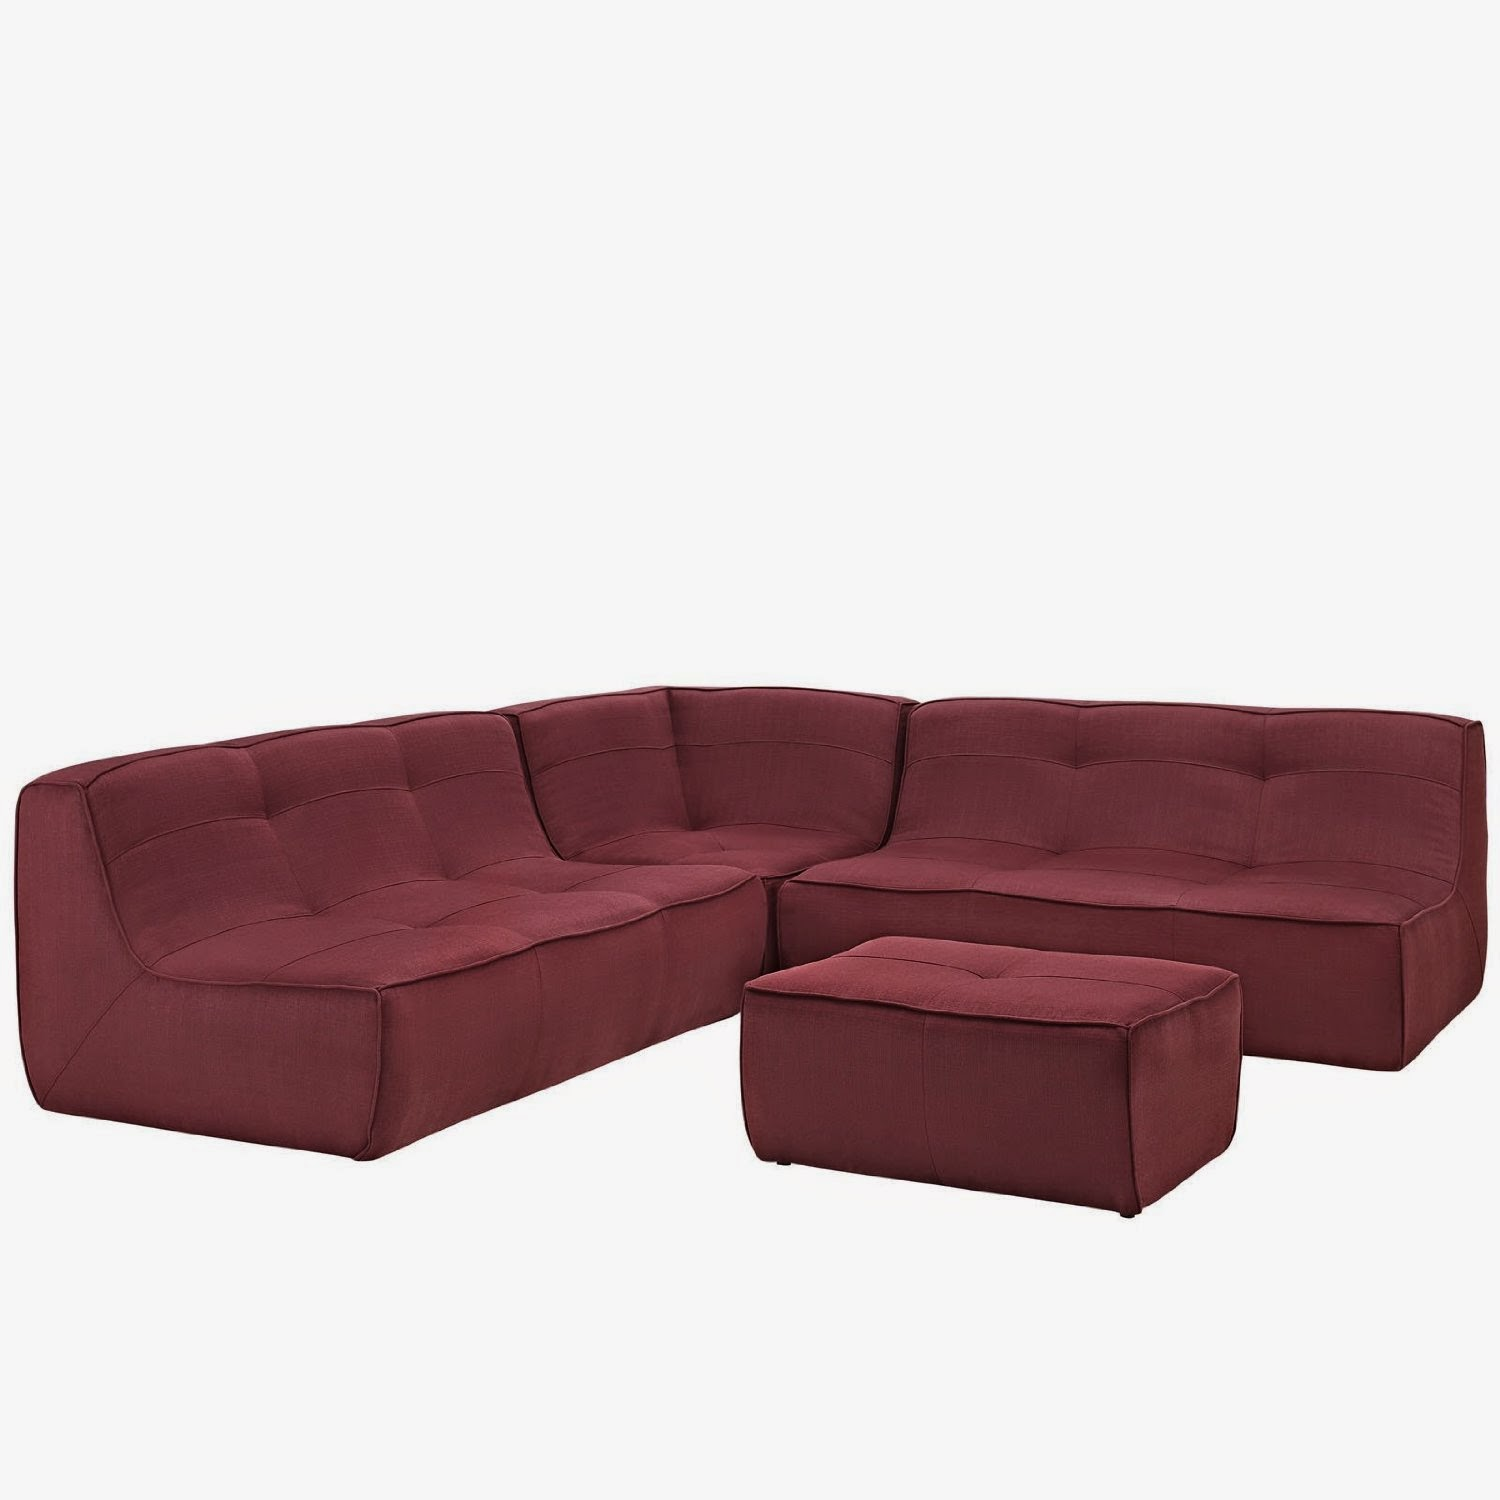 Curved Sofa Sectional Leather: Curved Sofa Couch For Sale: Curved Leather Sofa Contemporary